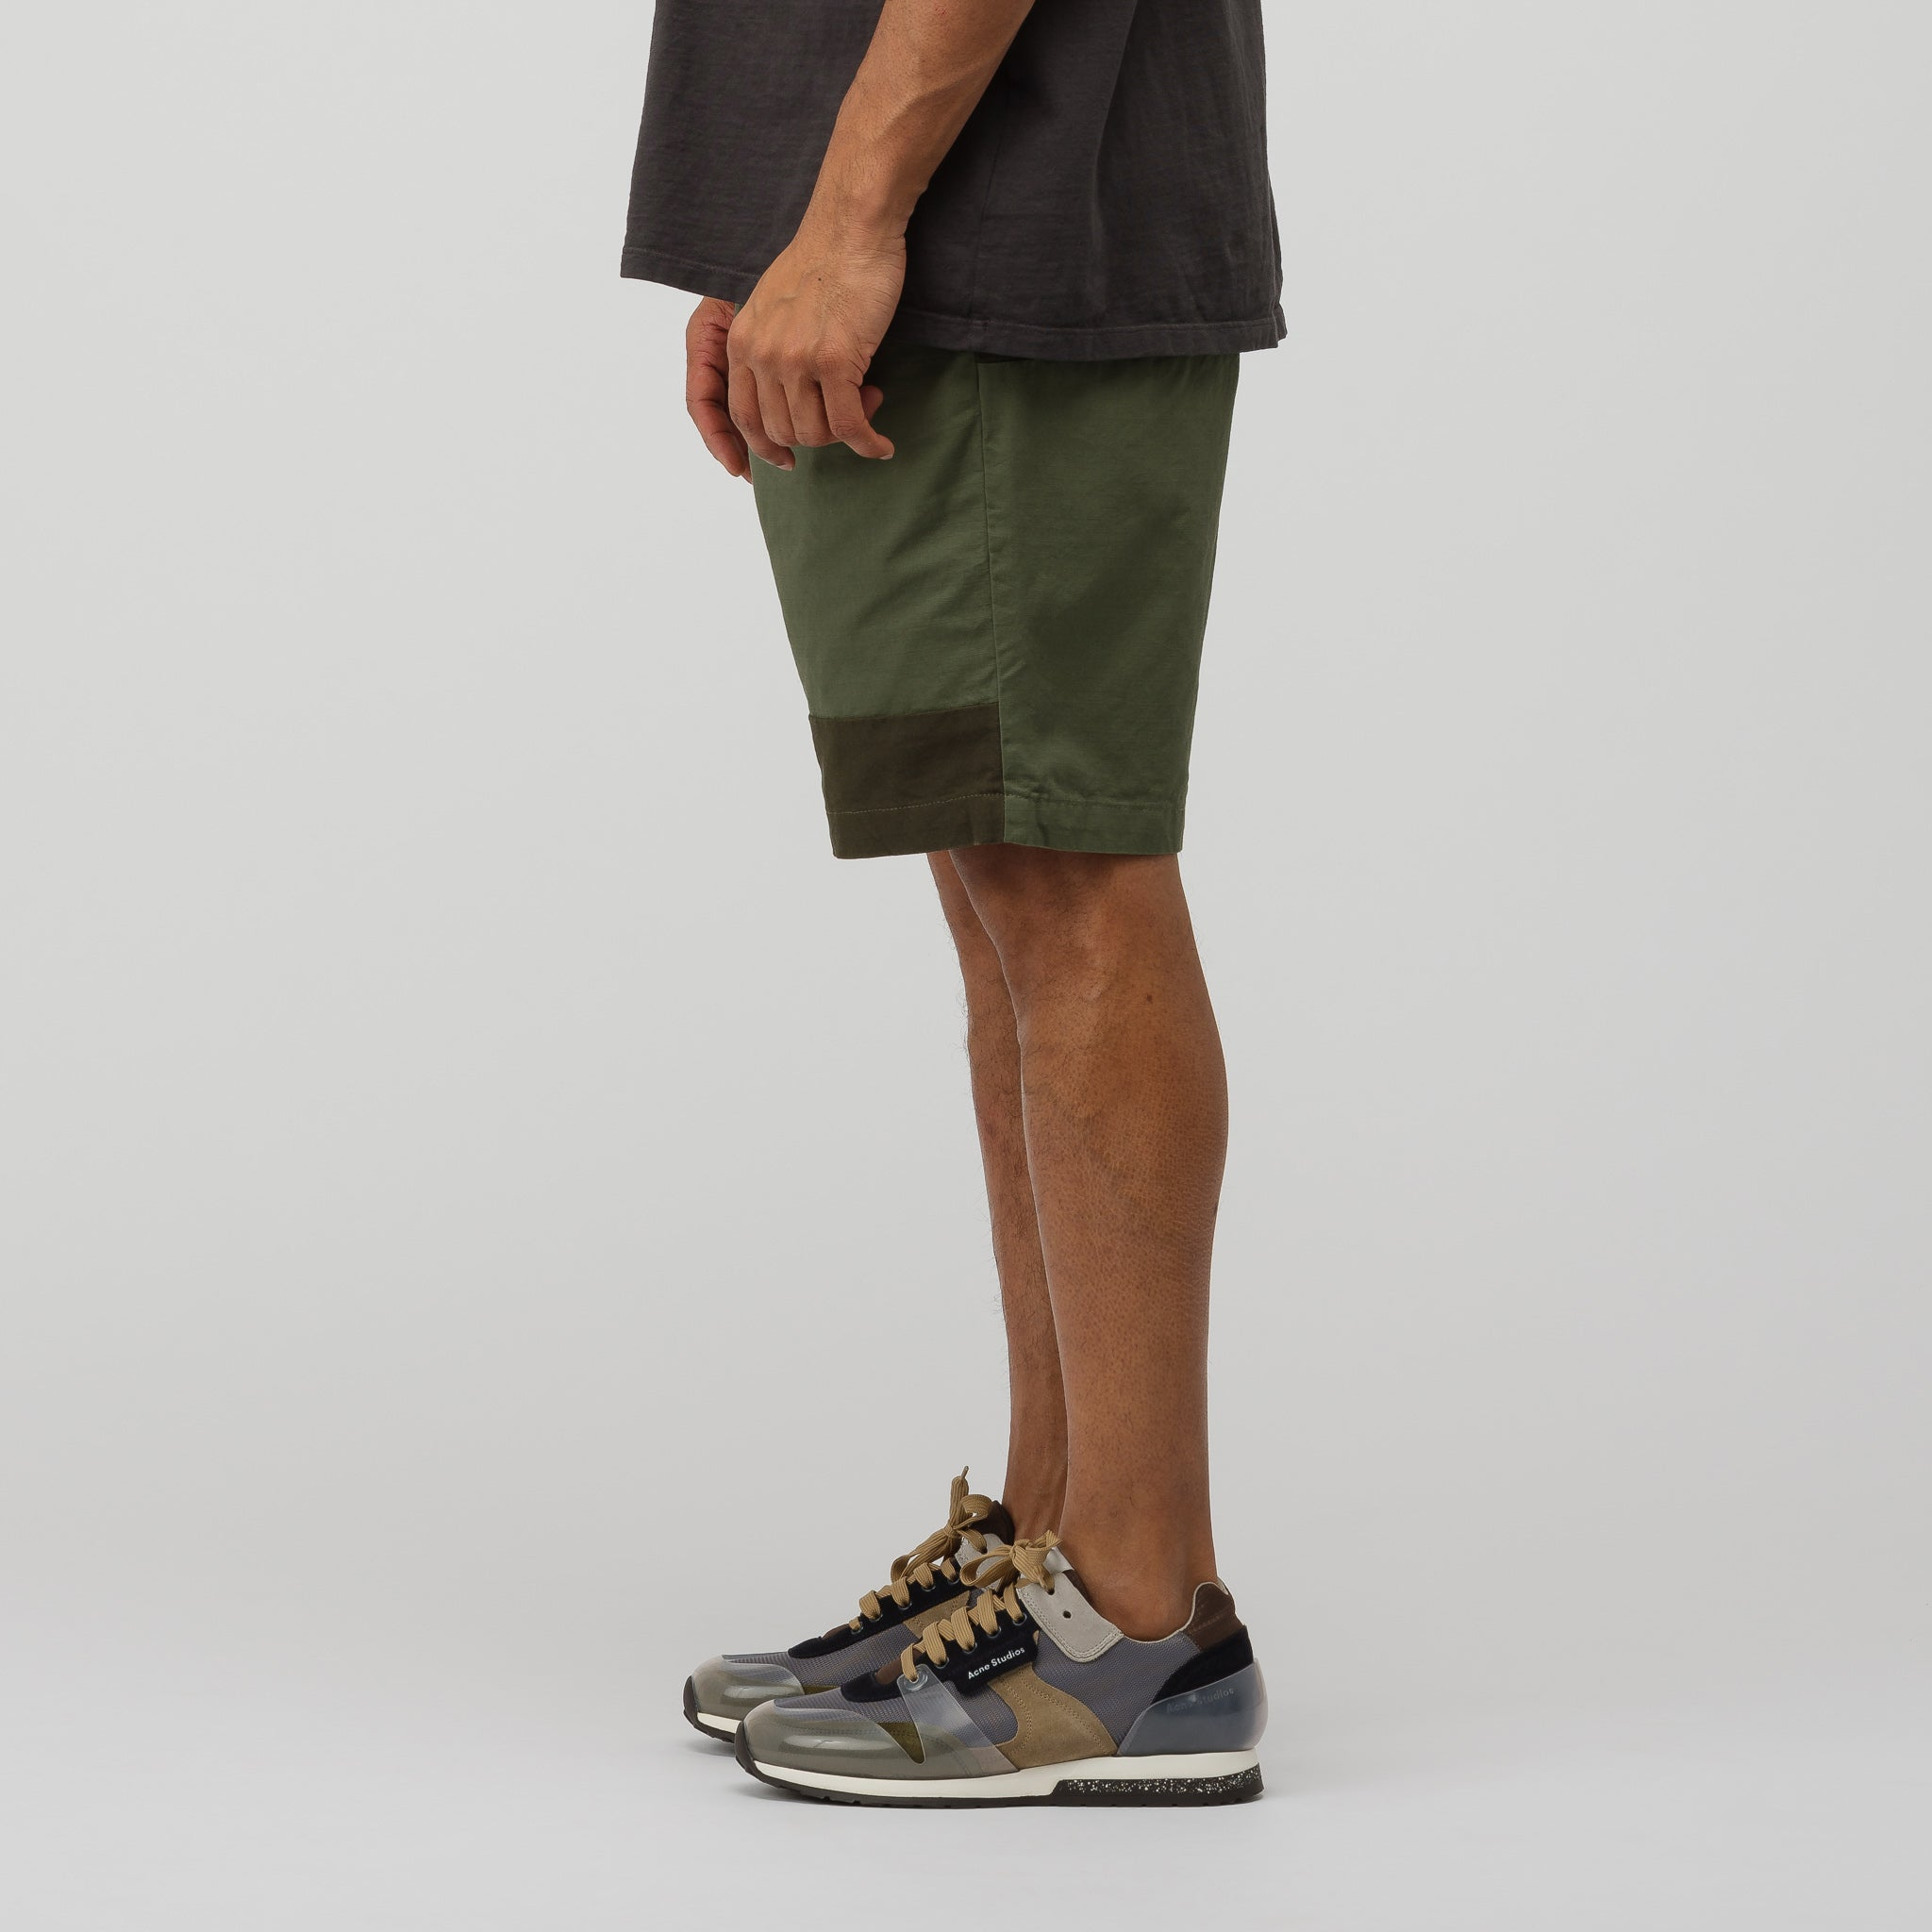 Ghurka Short in Olive Cotton Ripstop